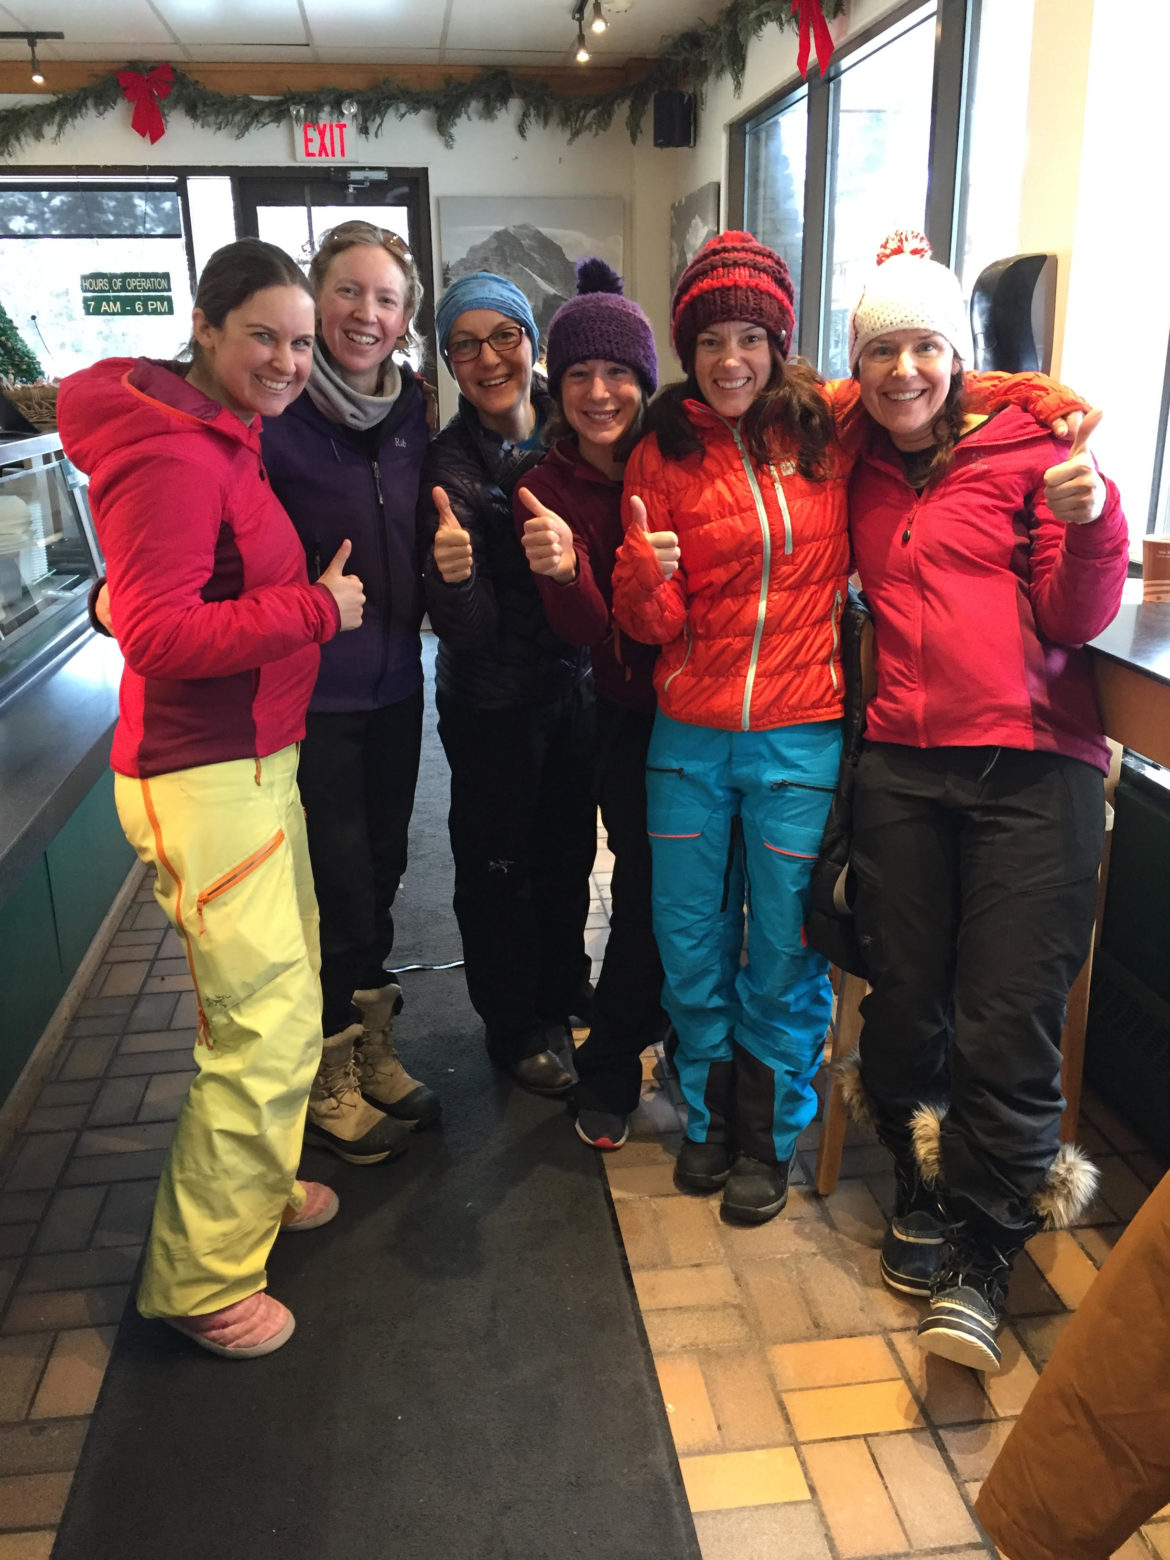 W 15 Ski 18 The Dec Section end Women 2016 Only Of Acc Calgary wOEHq5nZXx